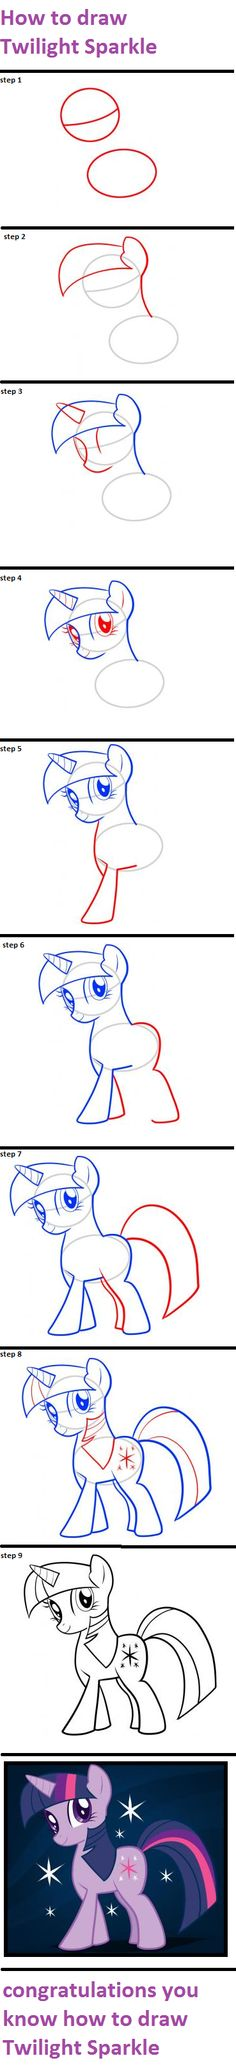 How to draw Twilight Sparkle by monselombax